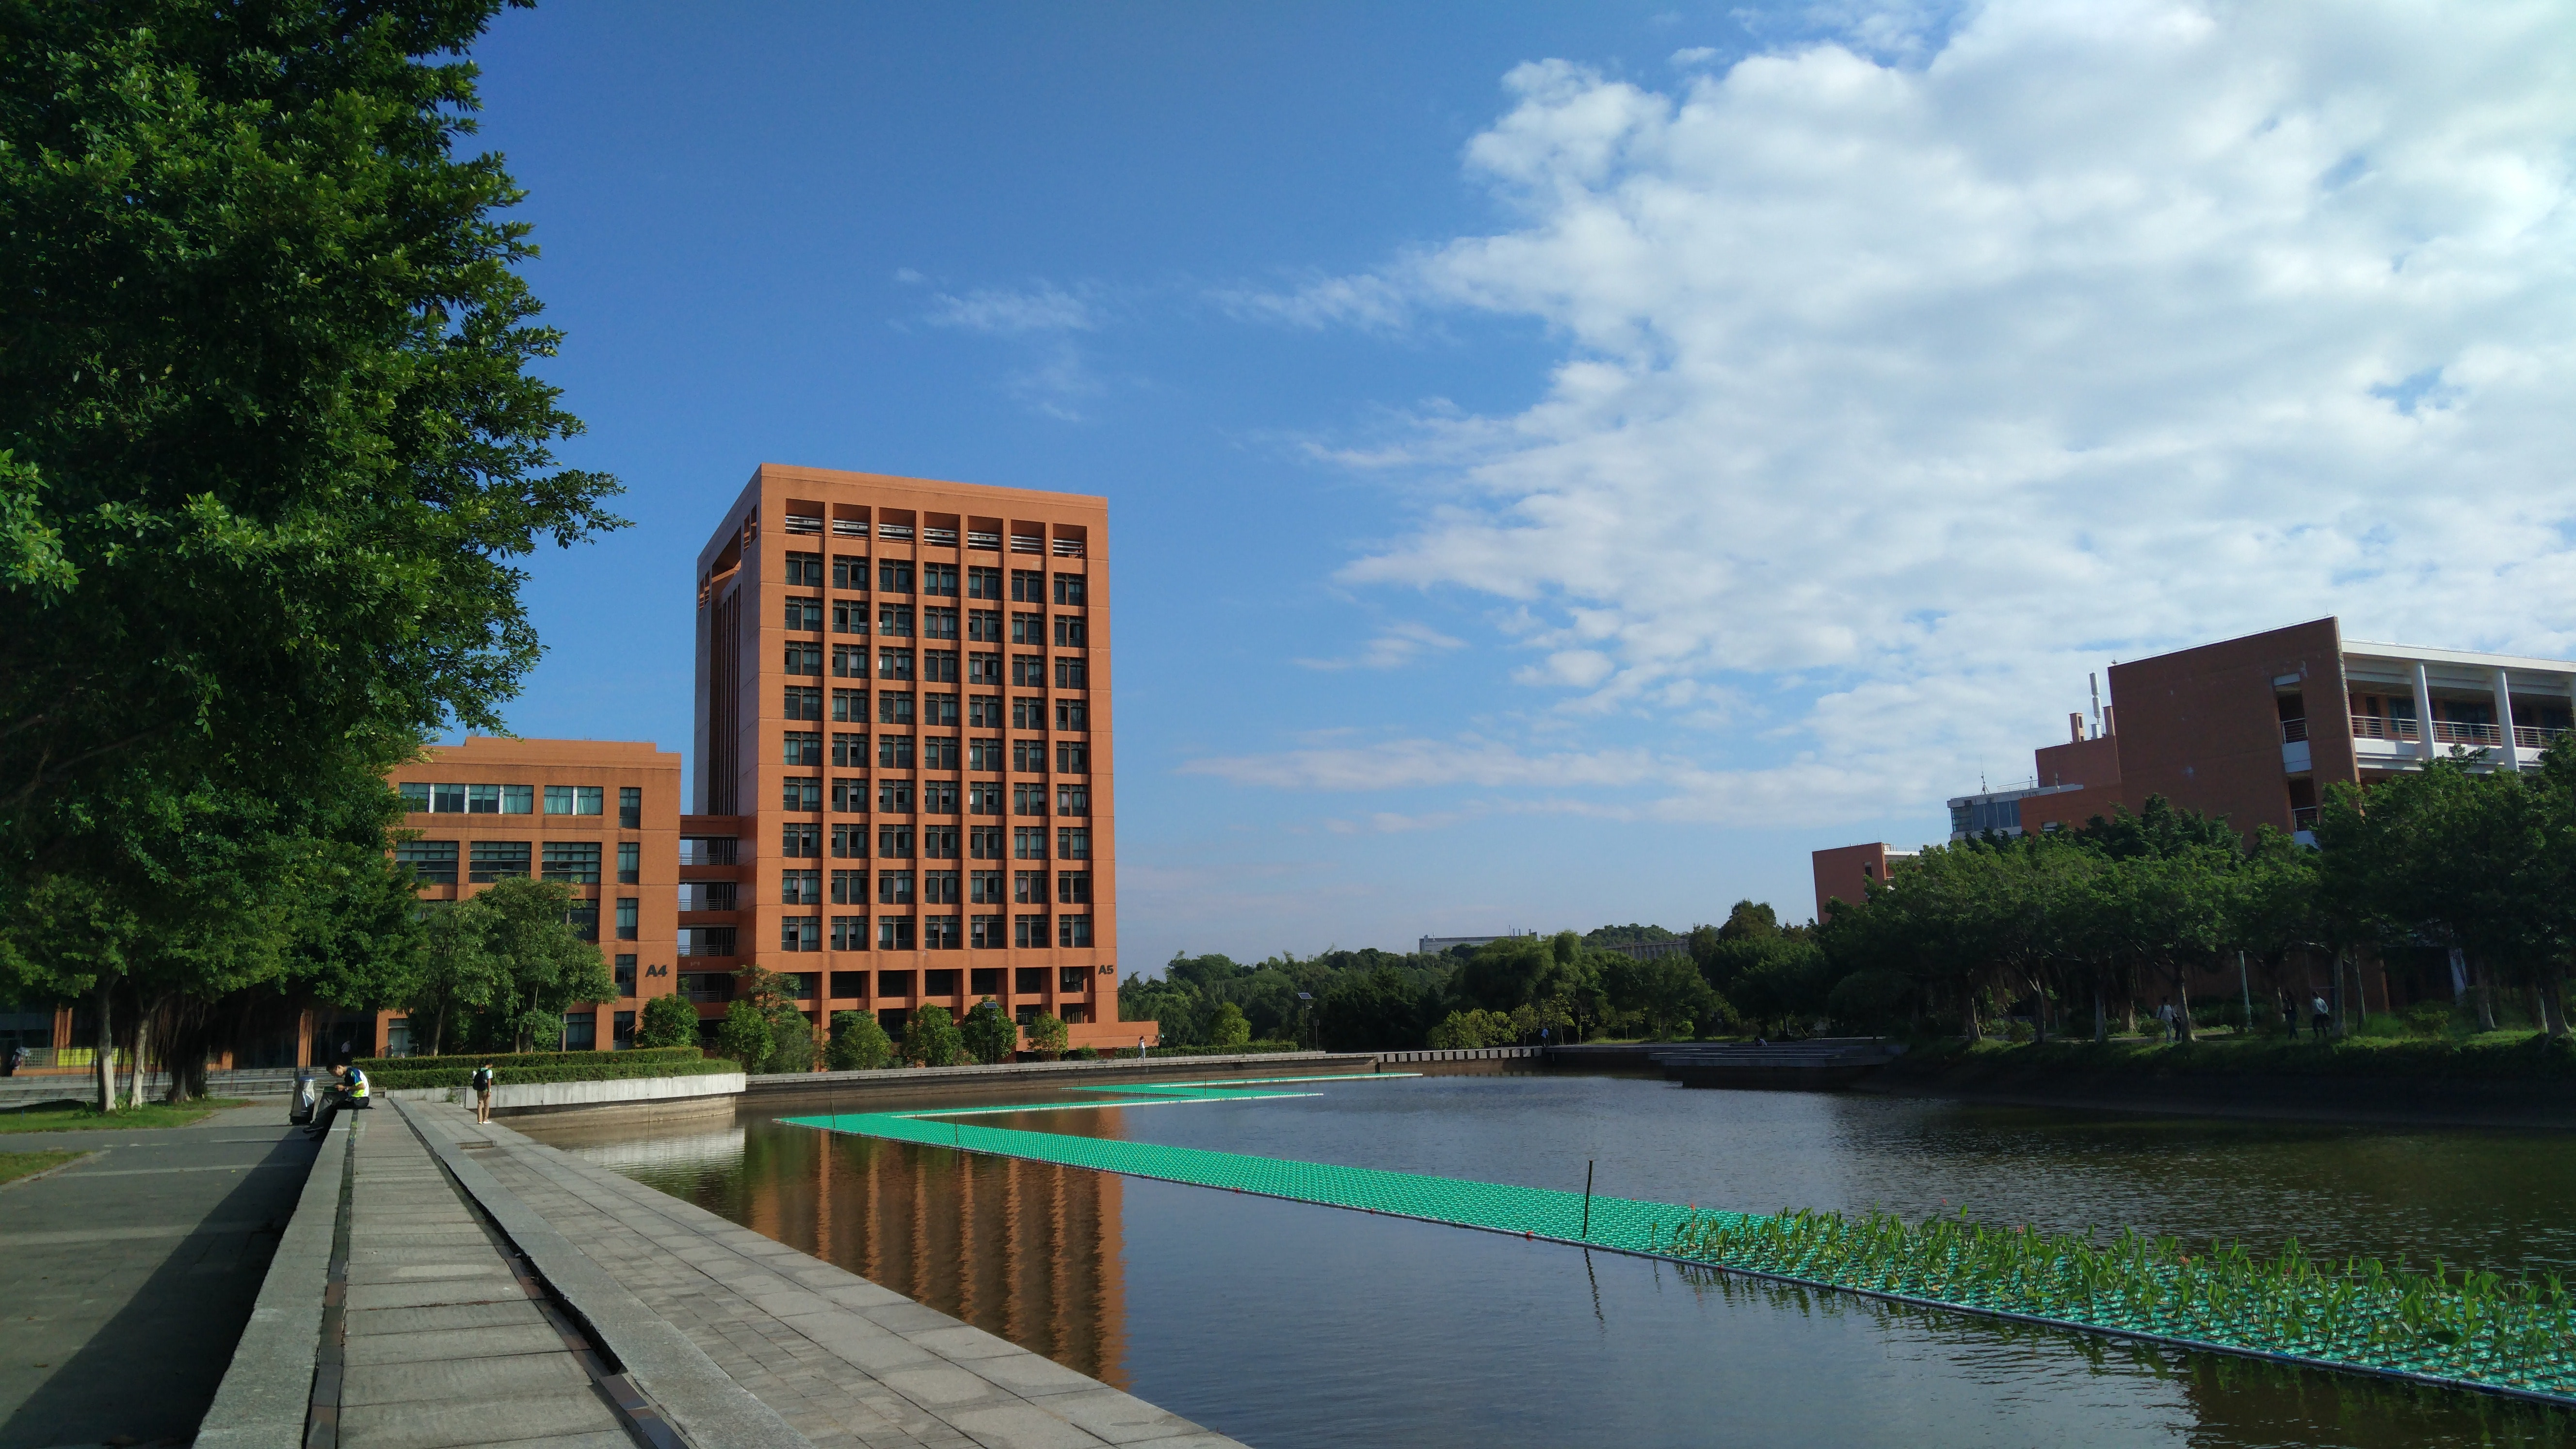 Brown Concrete Structure during Day Time, Architecture, Building, Pond, Water, HQ Photo